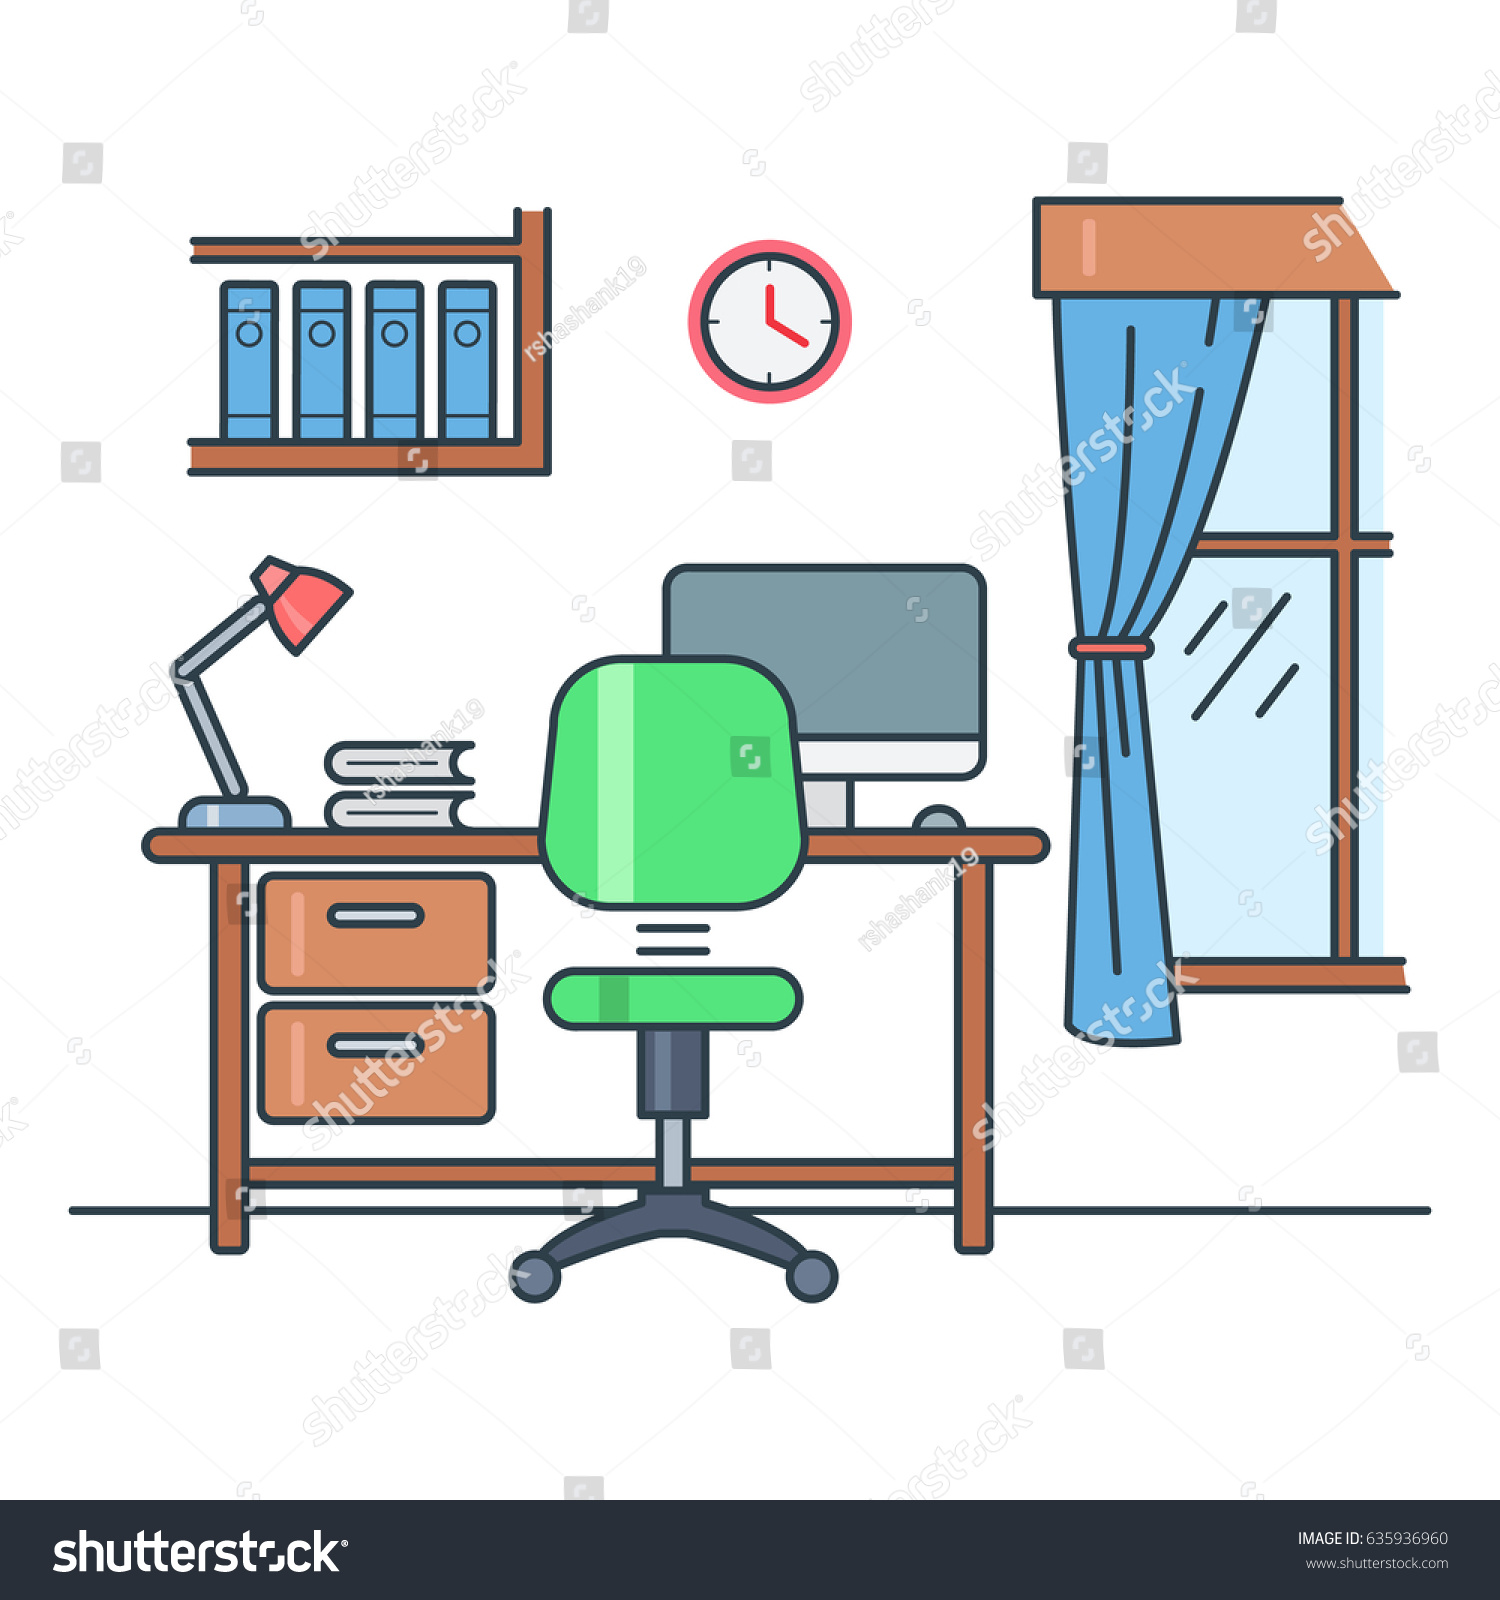 Study Room Stock Vector 635936960 Shutterstock